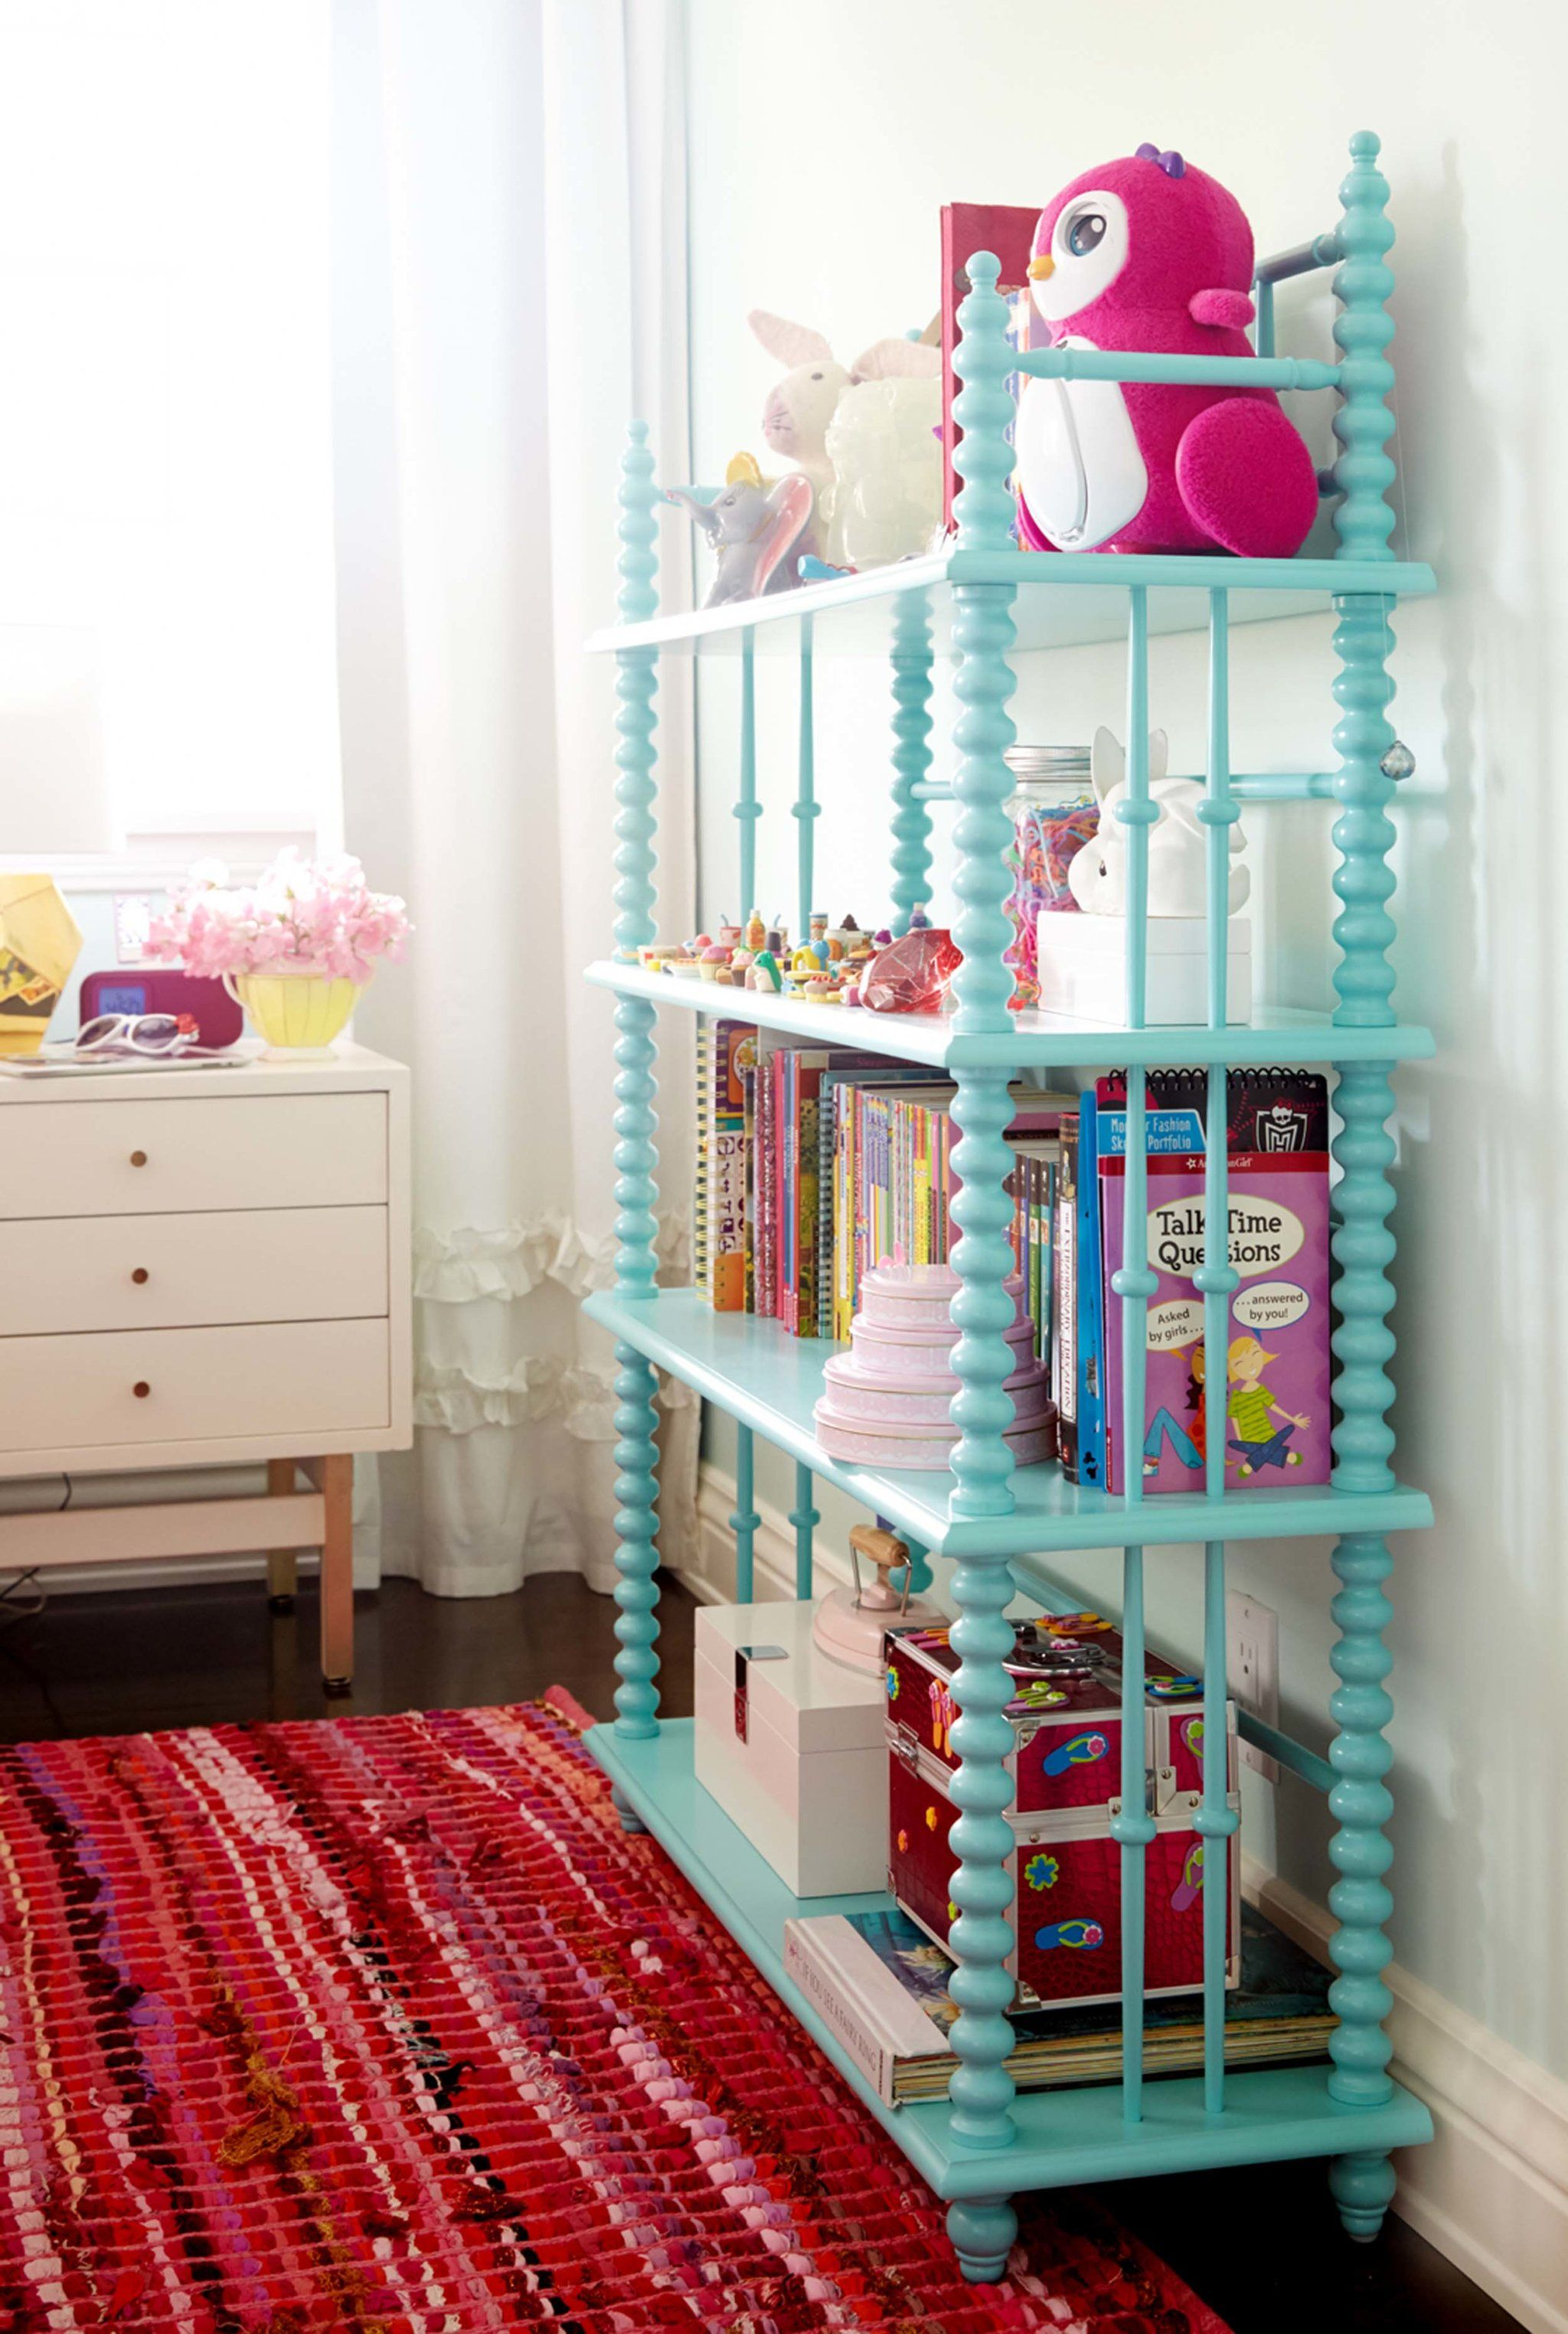 81 Bookcases - That's a LOT of books #girlsbedroom